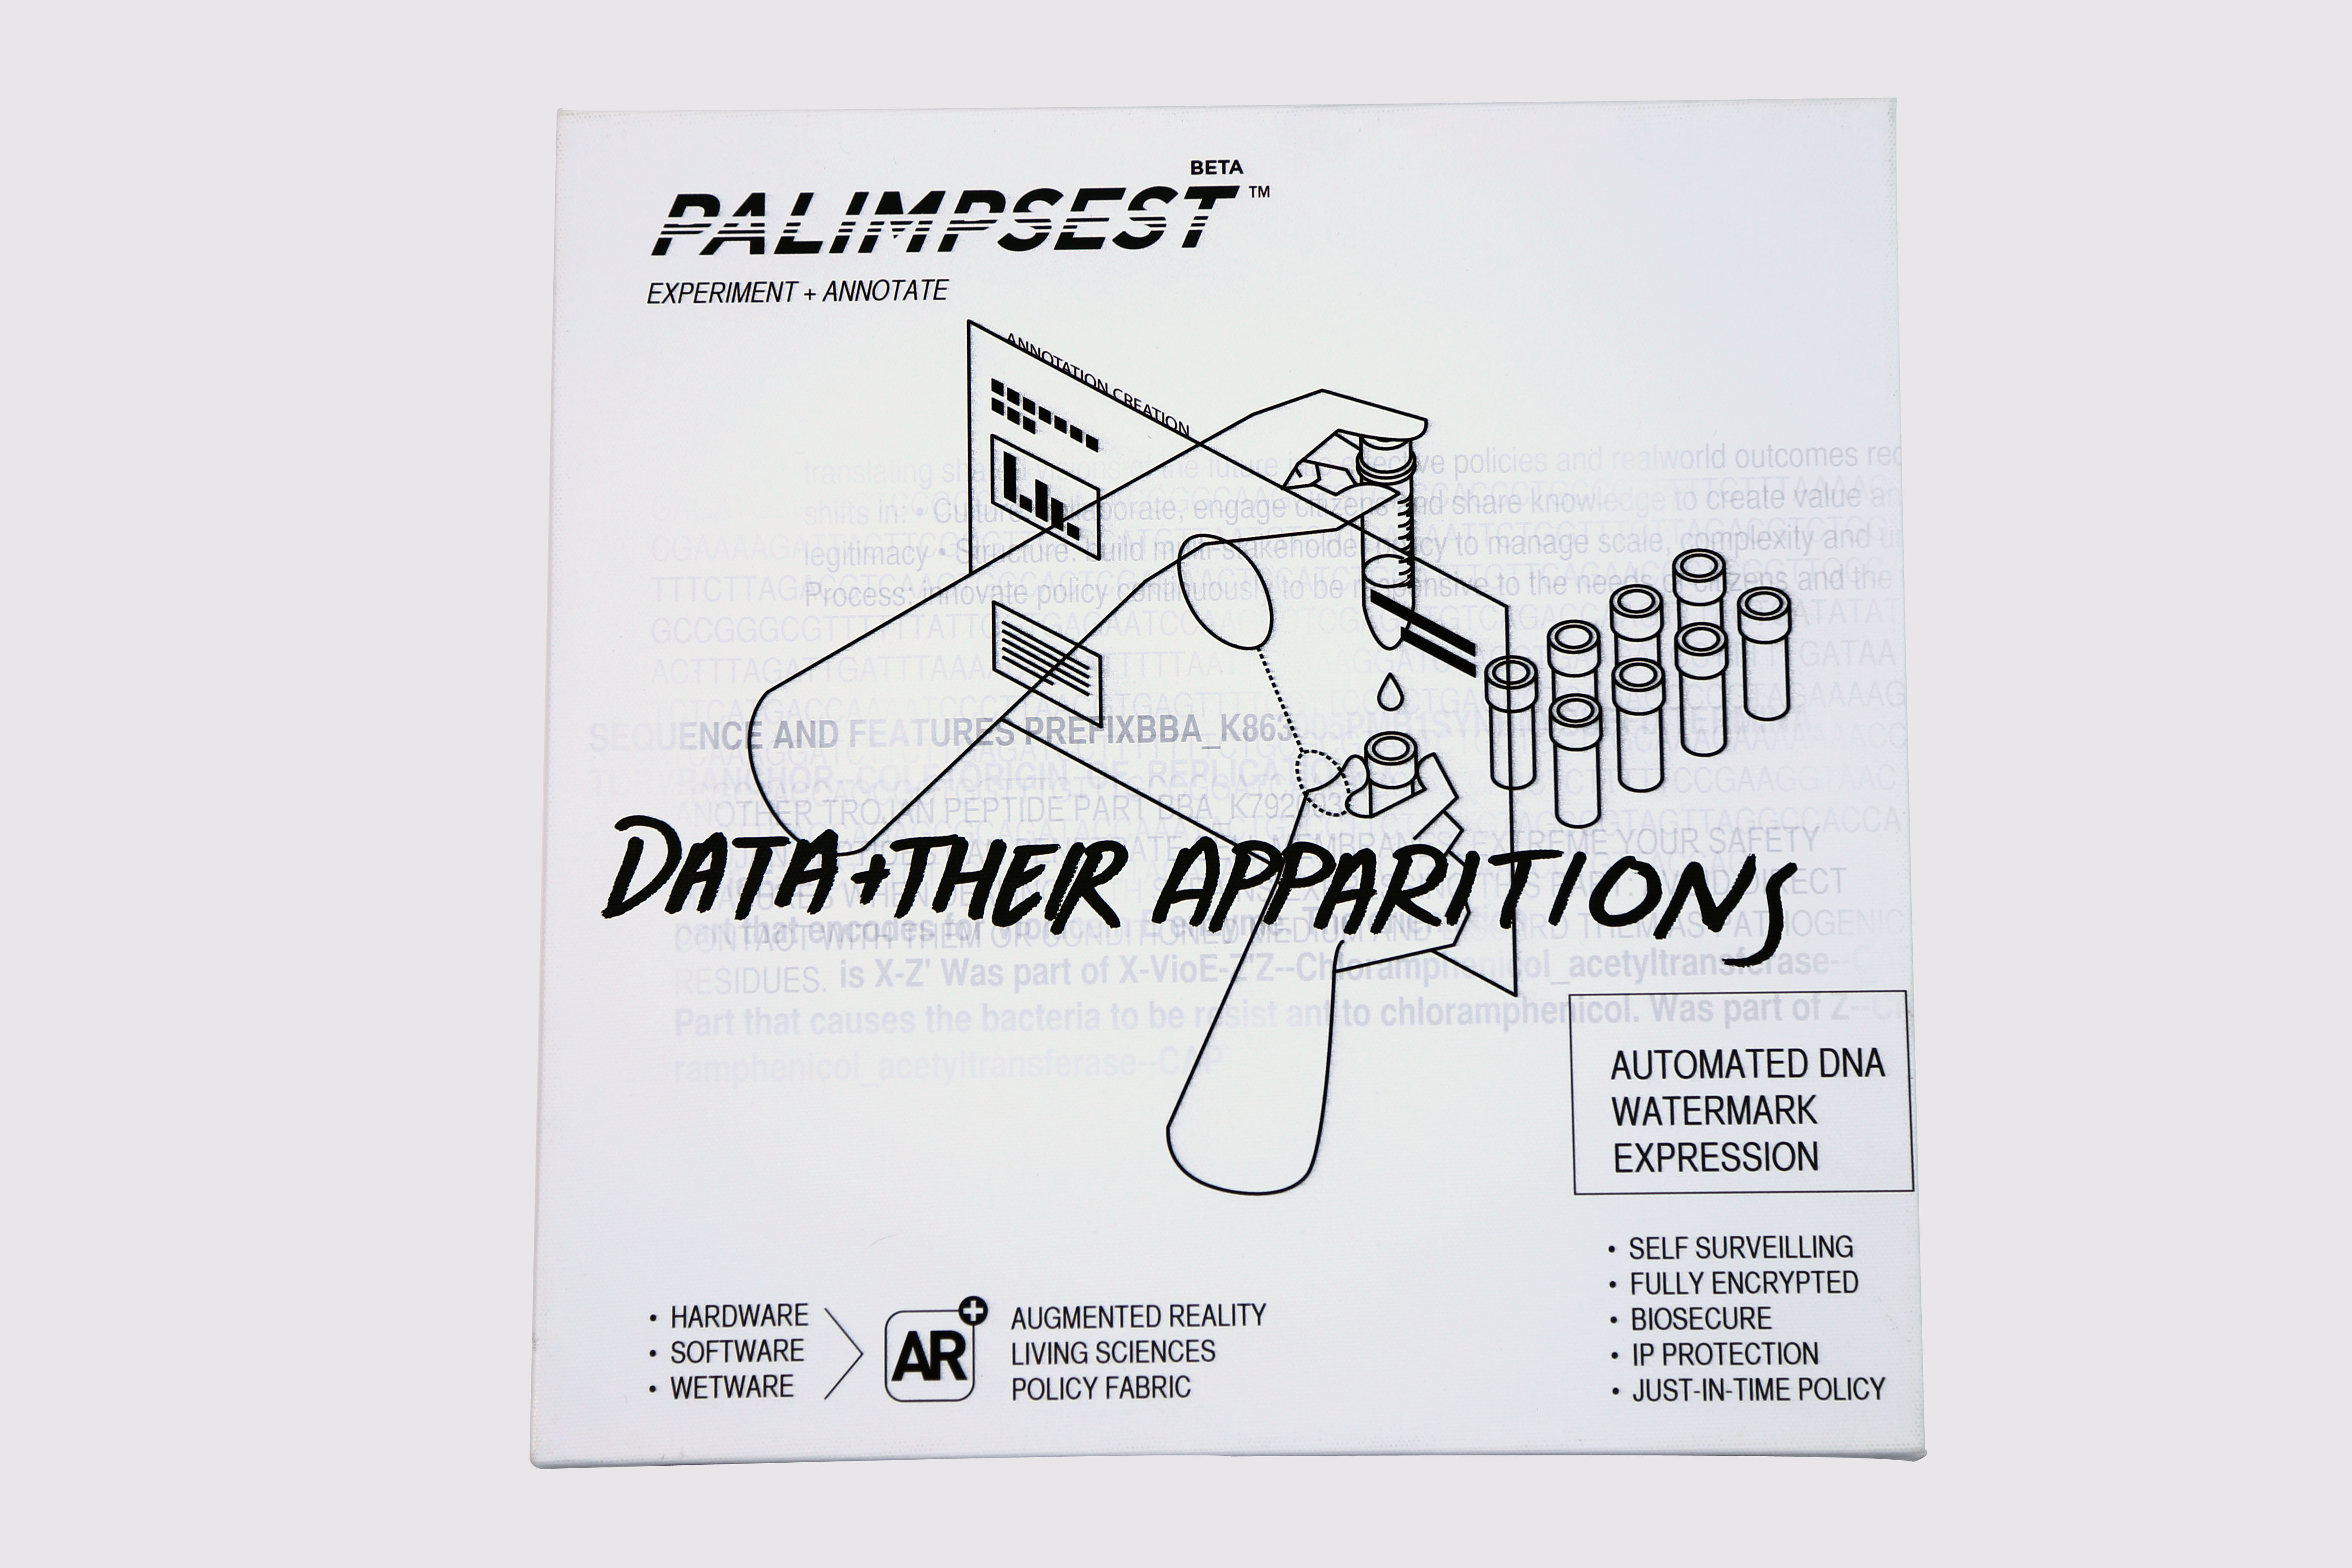 dataapparitions